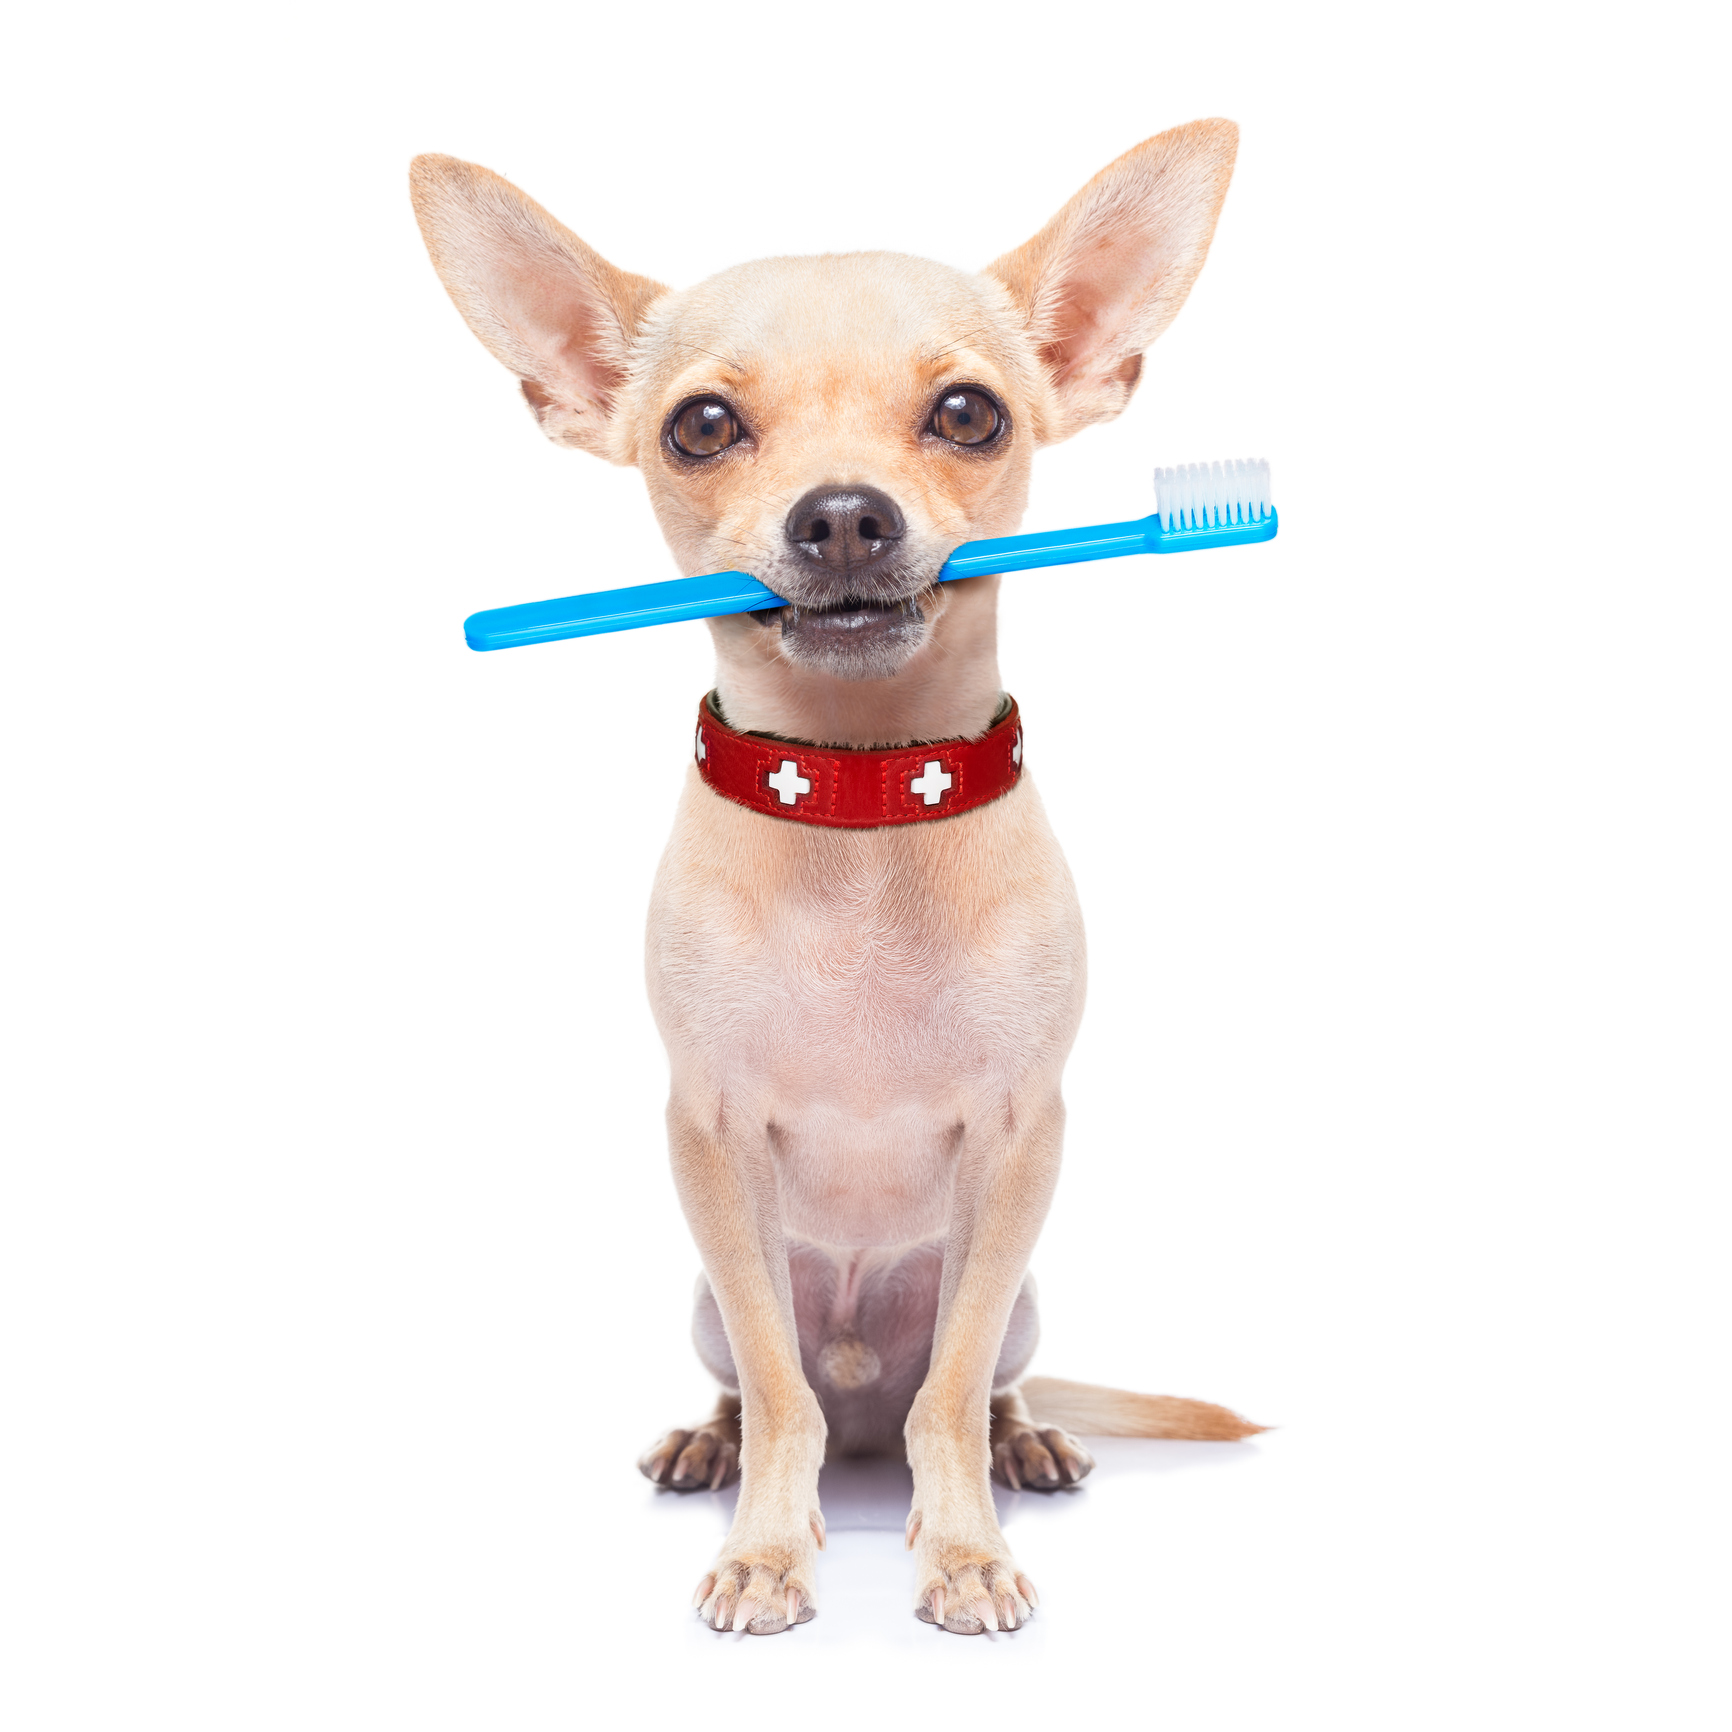 Why You Should Have Yearly Dental Checkups For Your Pet